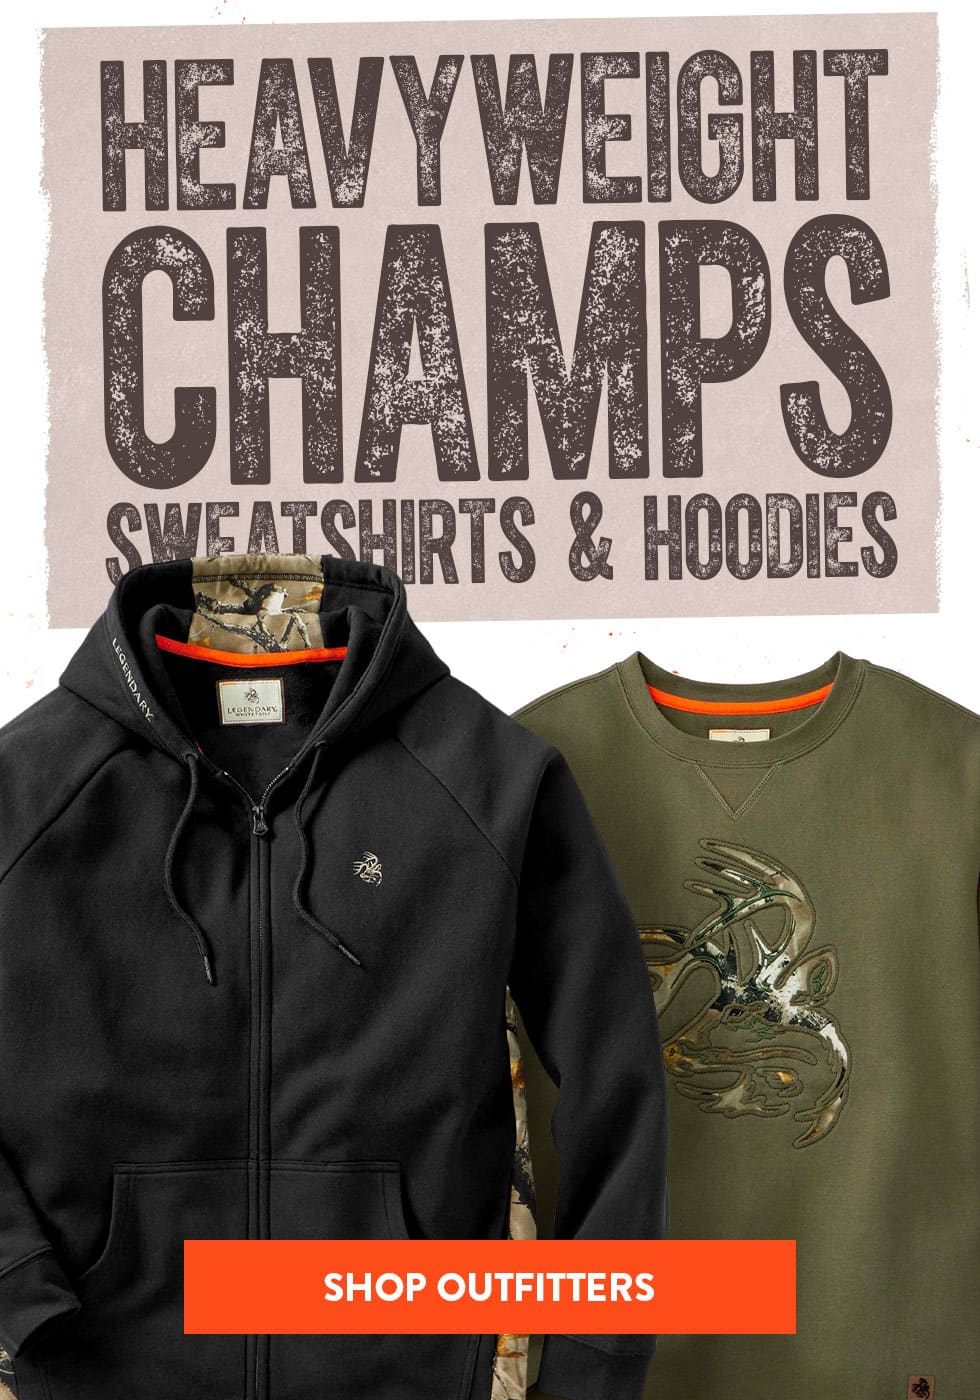 Outfitter Hoodies & Sweatshirts